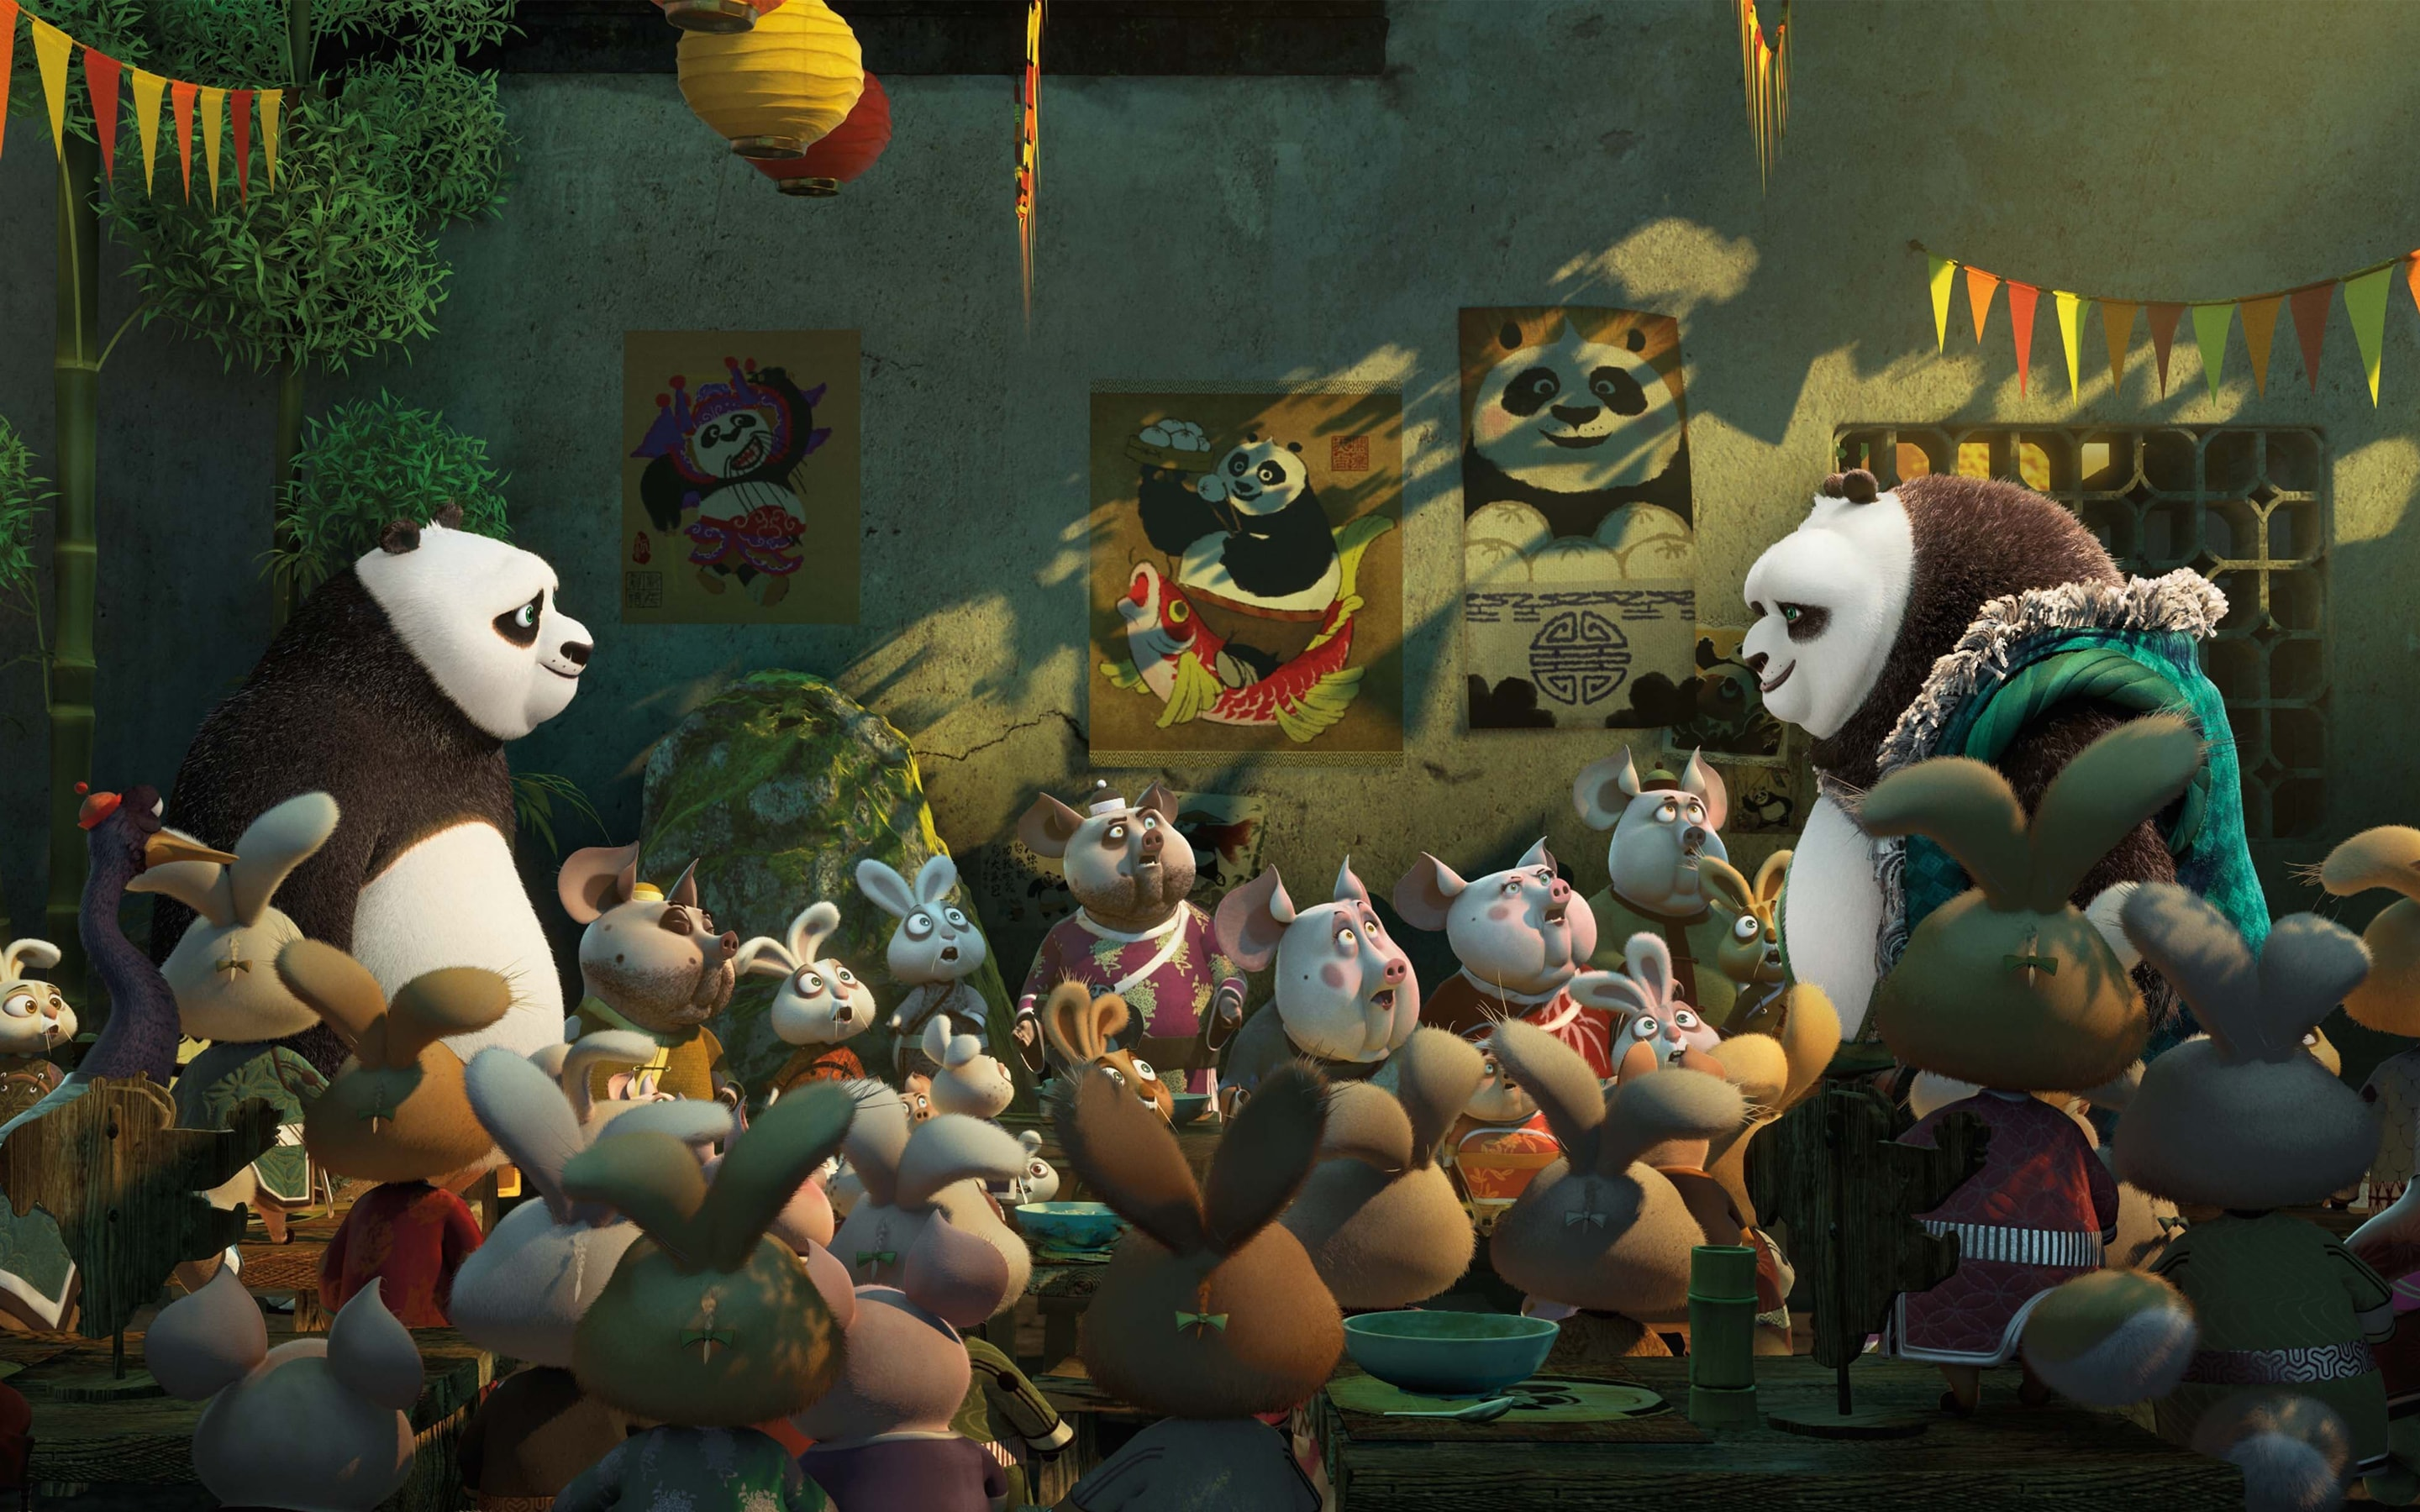 kung fu panda 3 hd desktop wallpapers | 7wallpapers